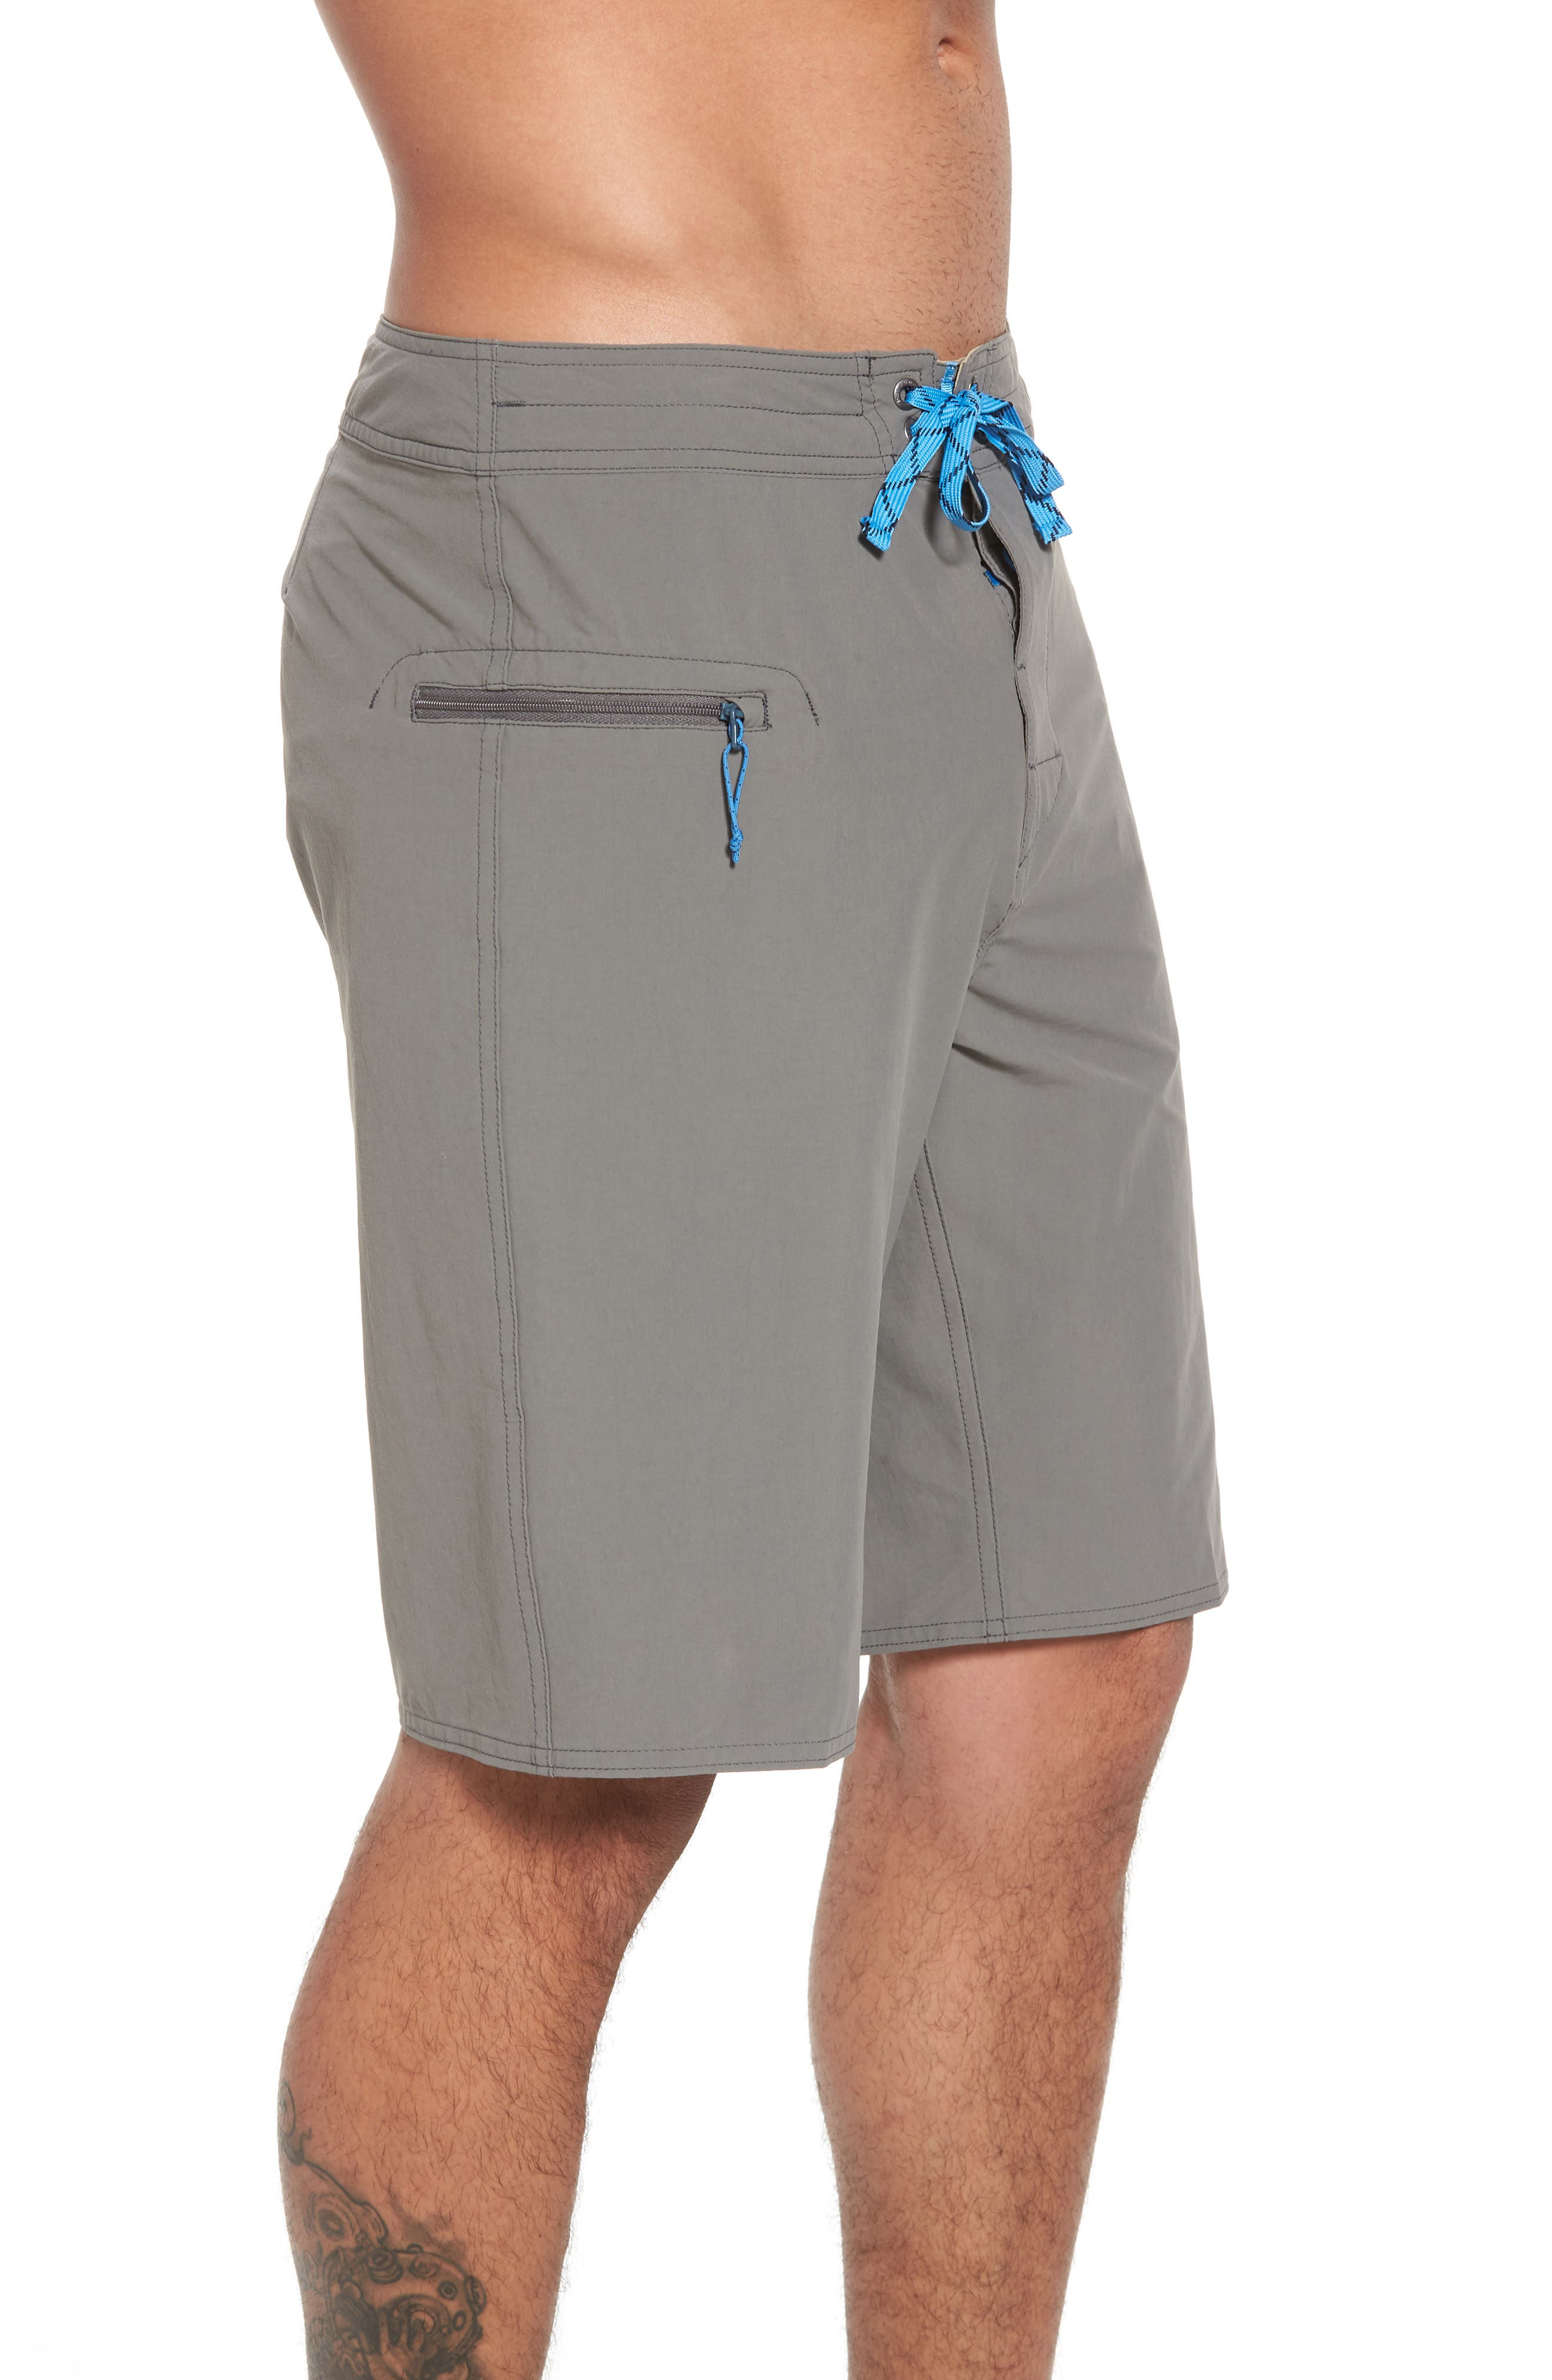 Wavefarer Board Shorts,                             Alternate thumbnail 3, color,                             021